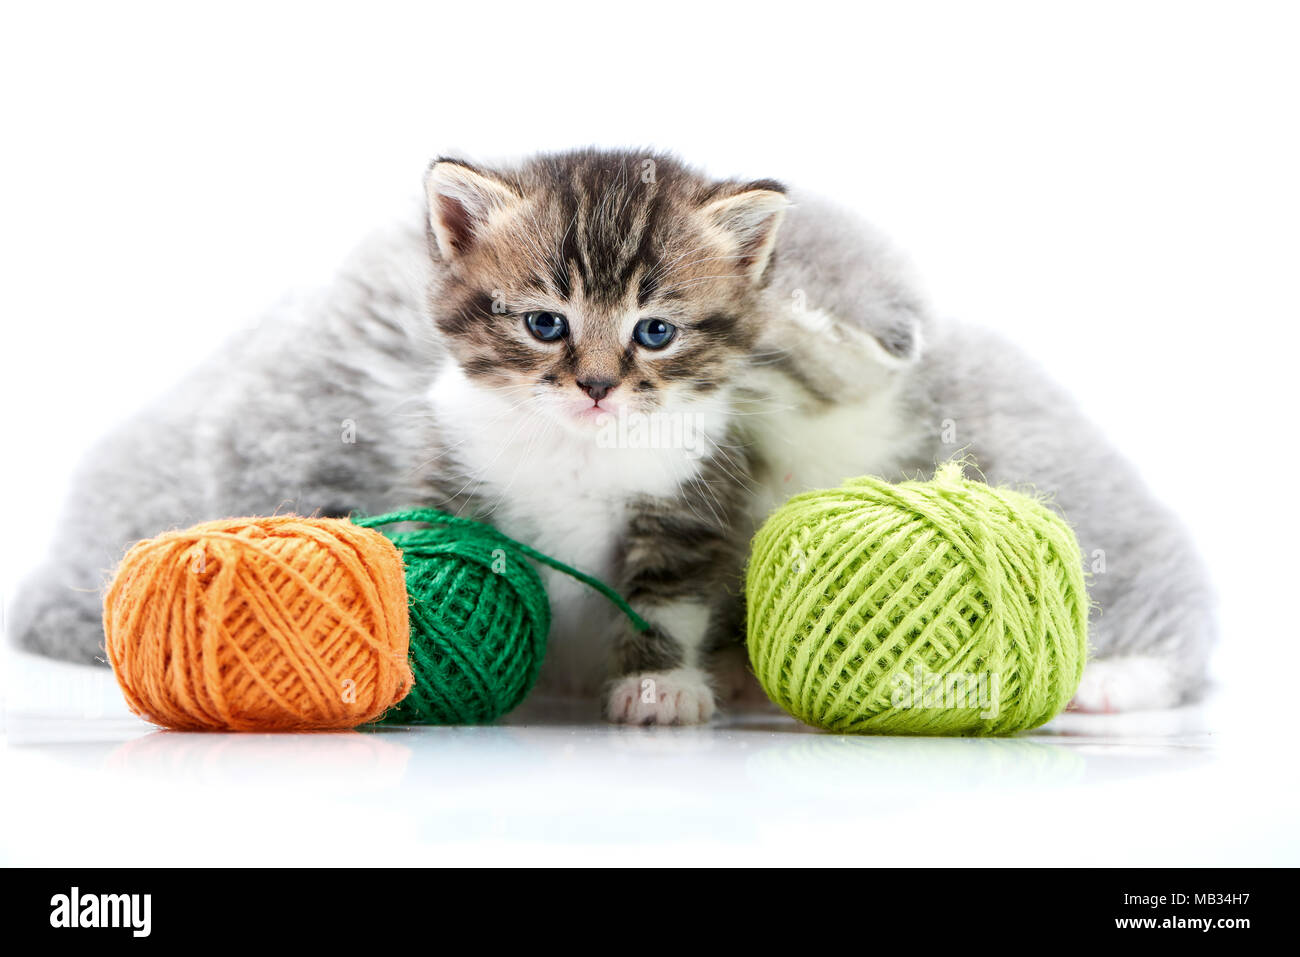 Grey fluffy cute kitties and one brown striped adorable kitten are playing with orange and green yarn balls in white photo studio. Wool gray funny amusing playful curious funny cats happiness exploring - Stock Image